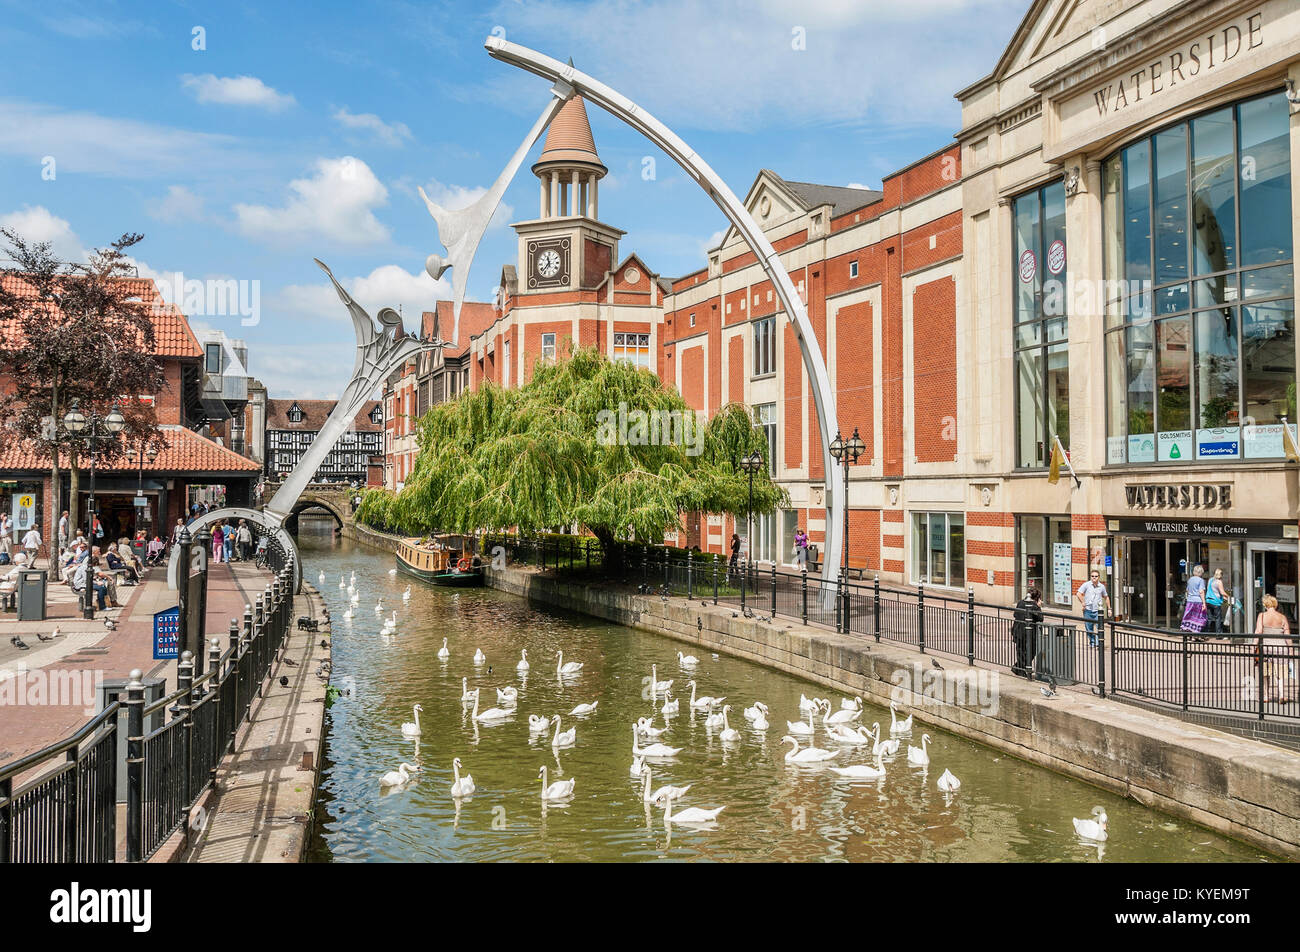 Waterside Shopping Center in the city center of Lincoln, Lincolnshire, England - Stock Image